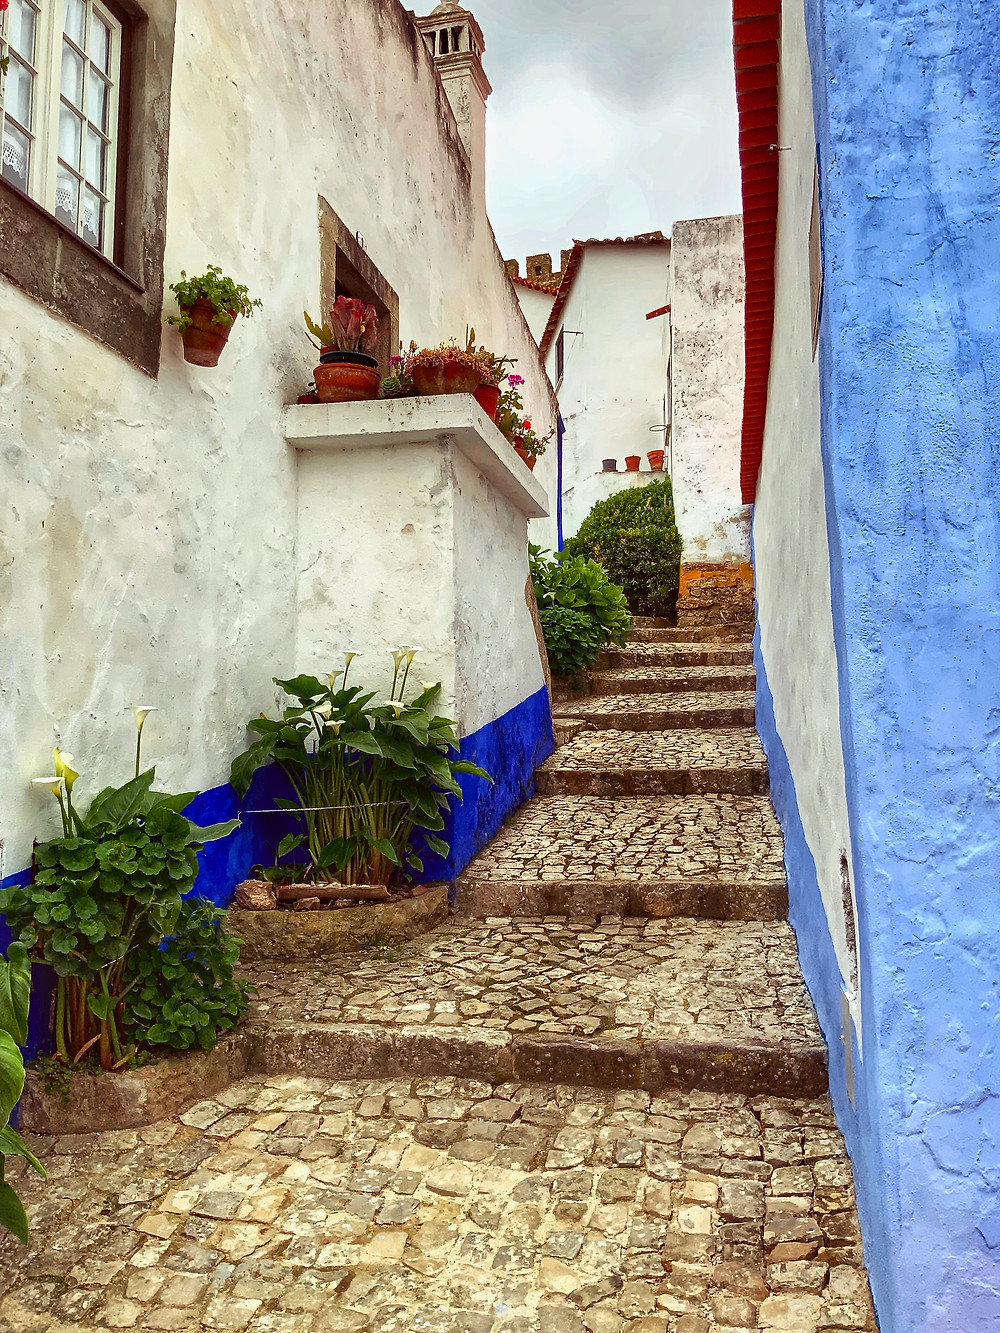 typical cobbled alleyway in Obidos